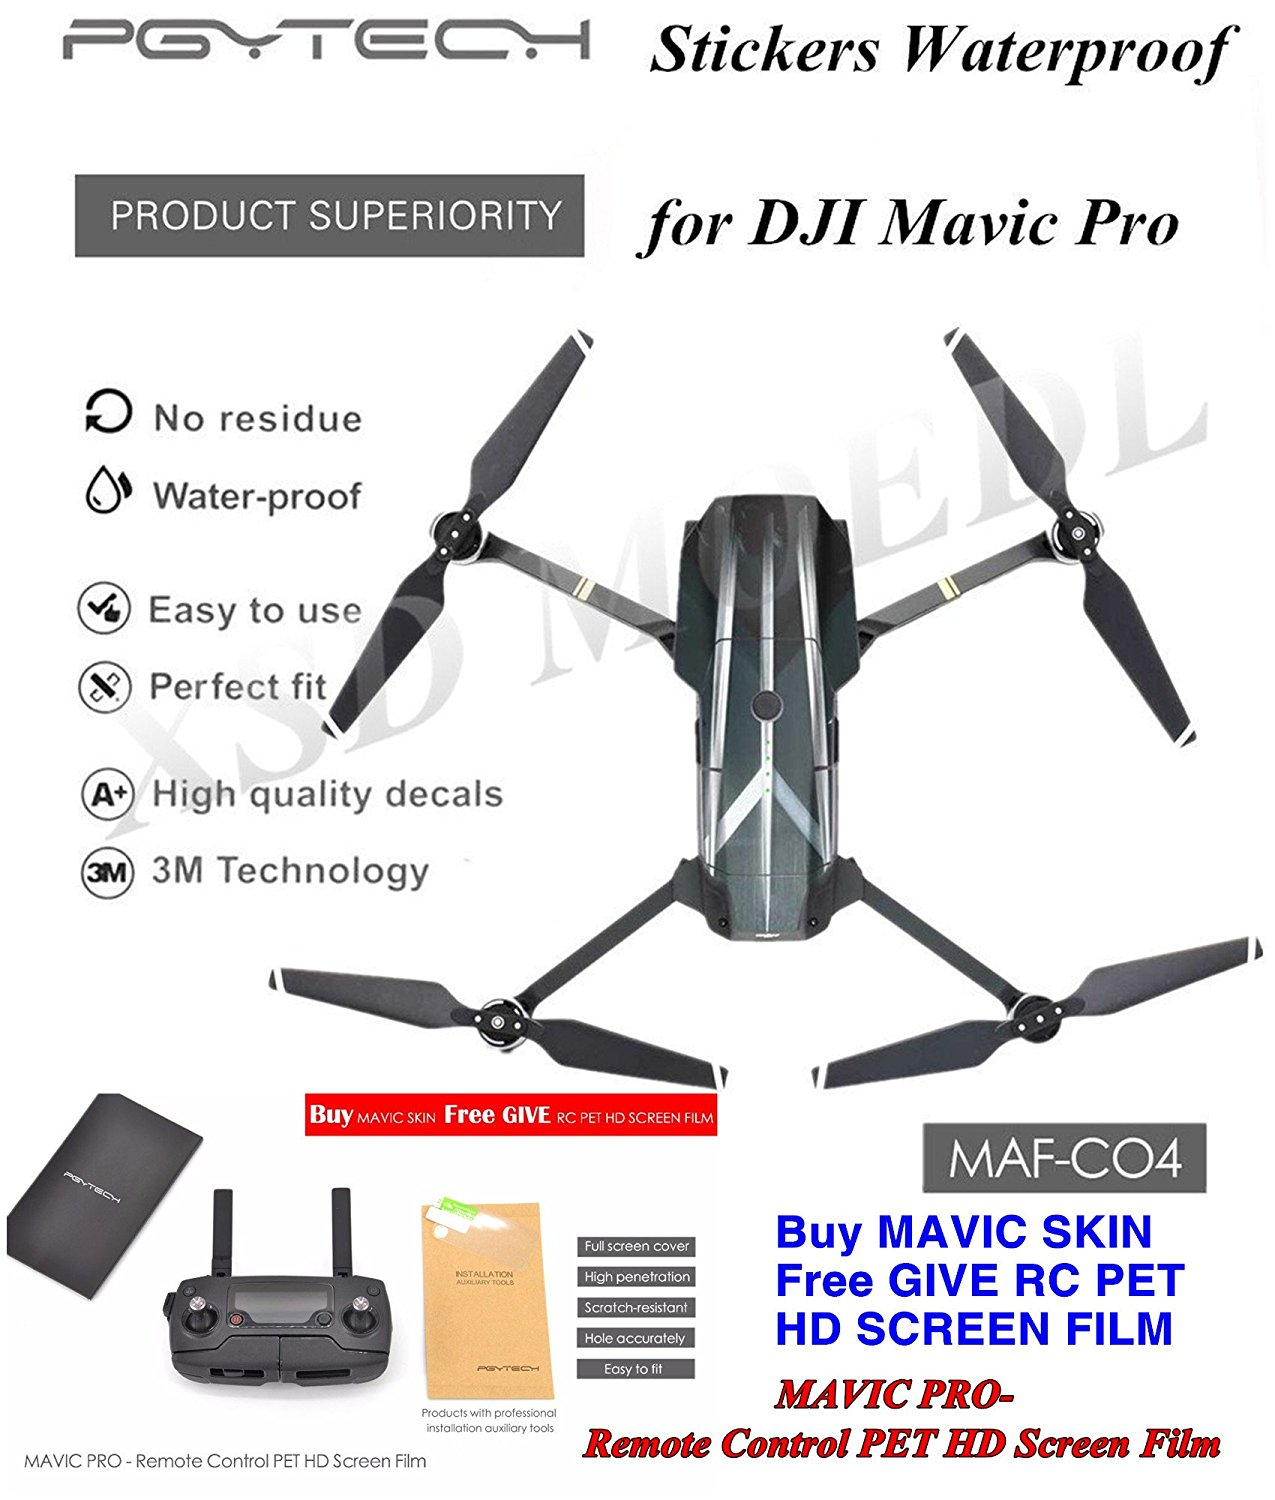 XSD MODEL Hyun-cool Shell Stickers Skin 3M Waterproof PVC Decals MAF-CO4 for DJI Mavic Pro